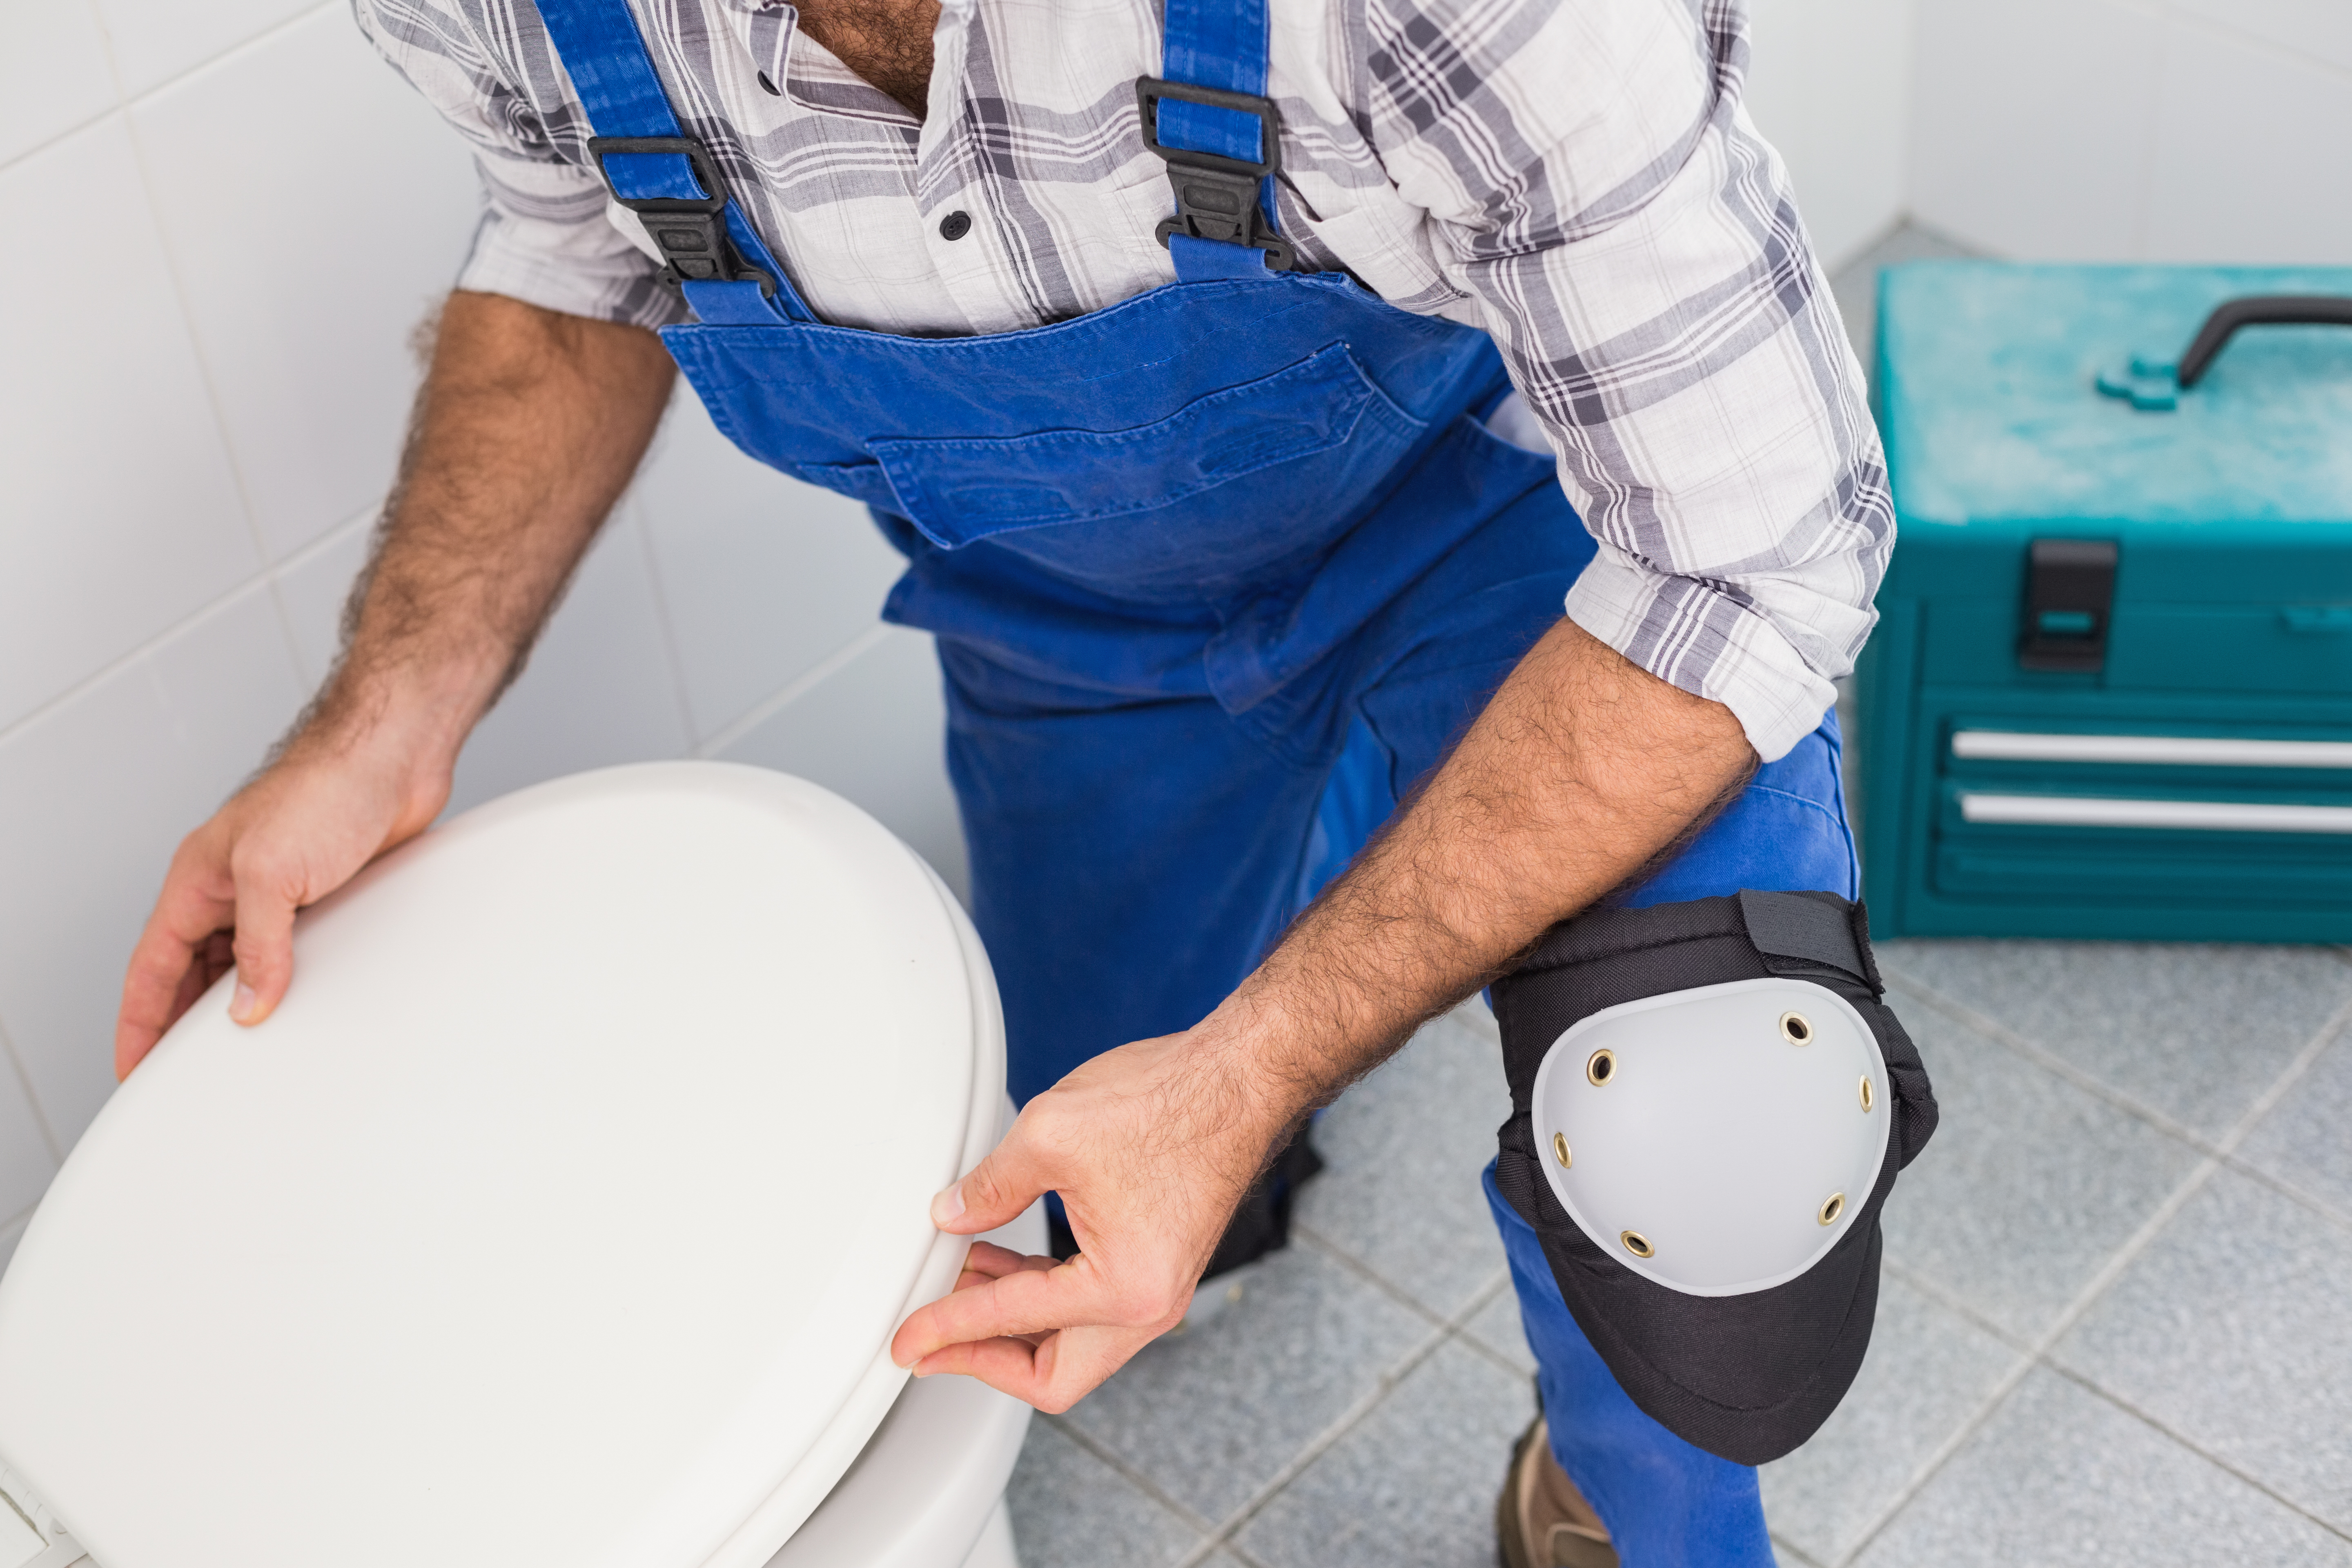 How to Raise a Toilet for Tile Installation | Home Guides